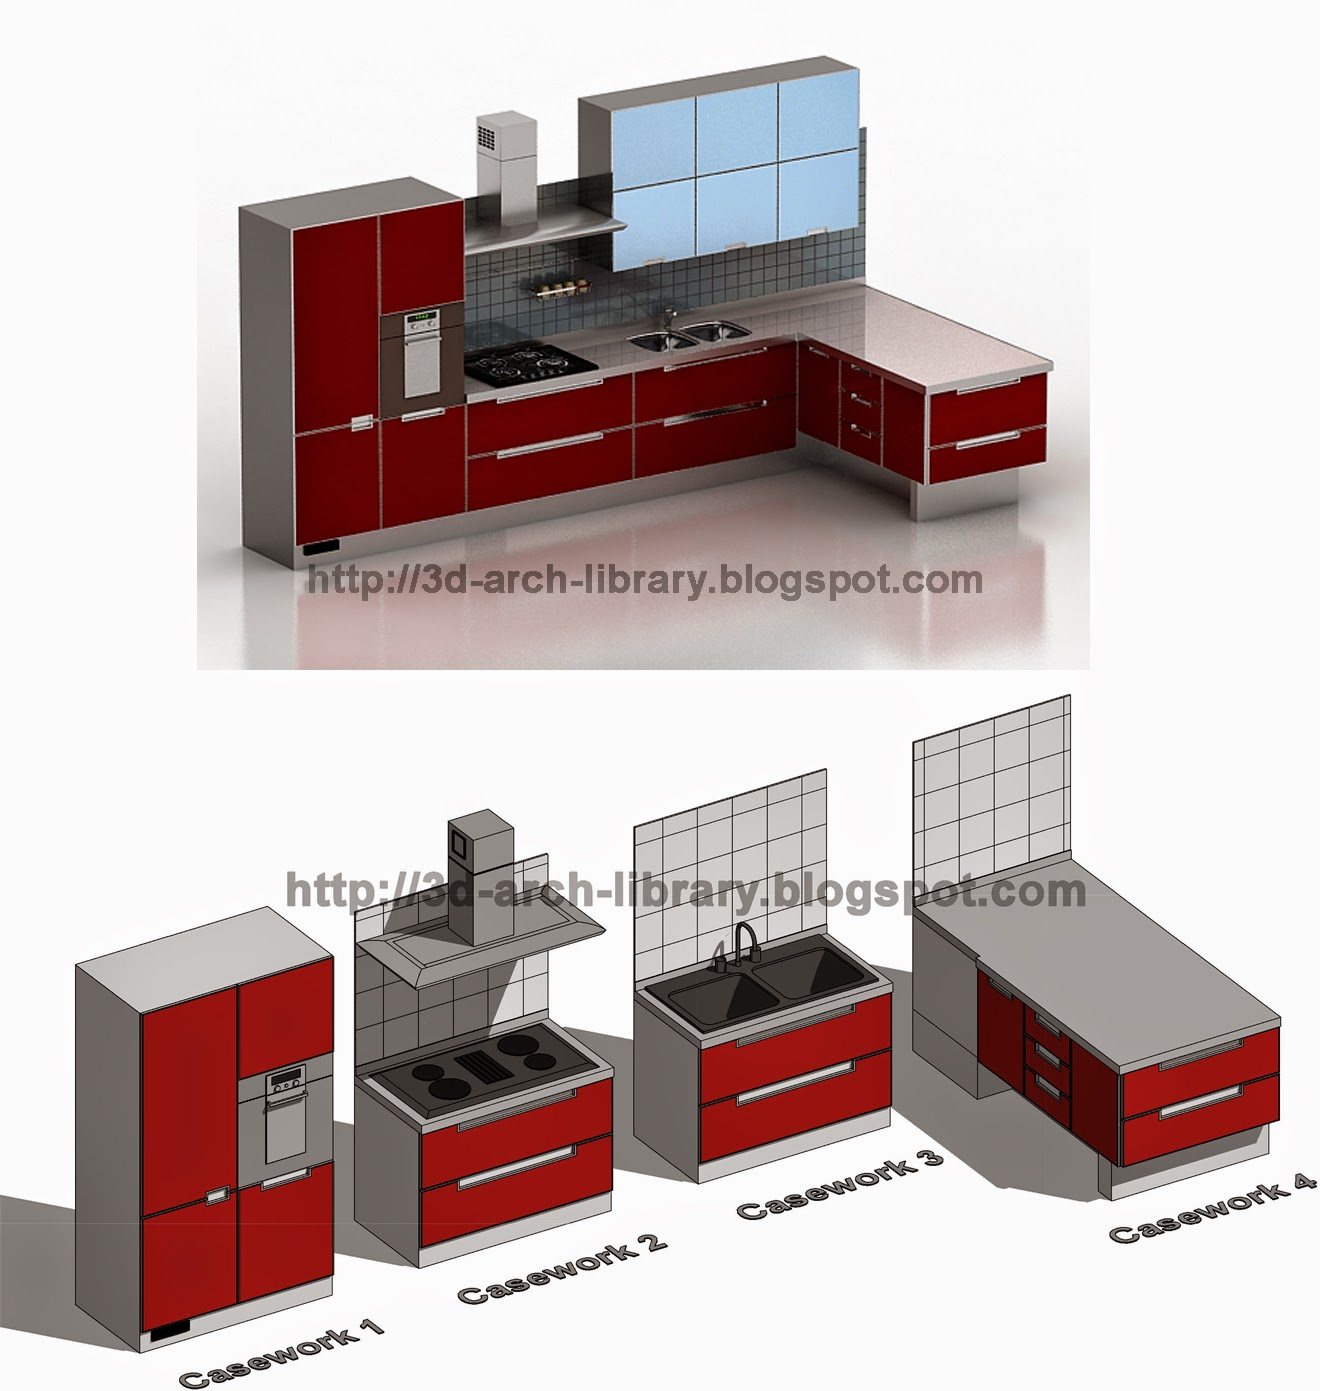 Casework 001 Kitchen Furniture Revit Library Revit Arch Library